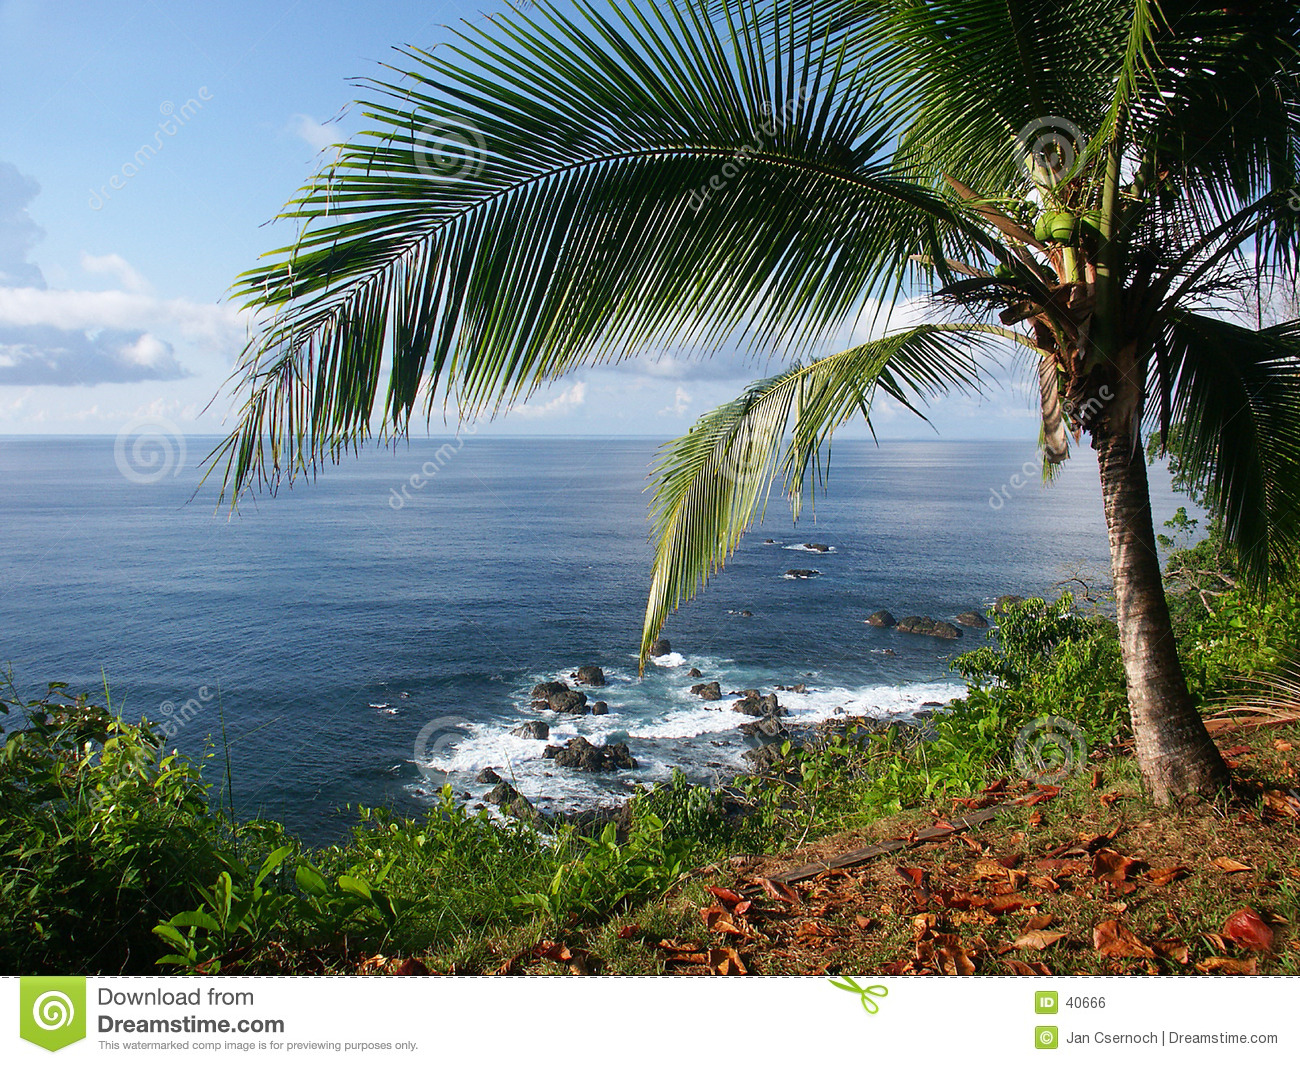 View of the ocean with palmtree